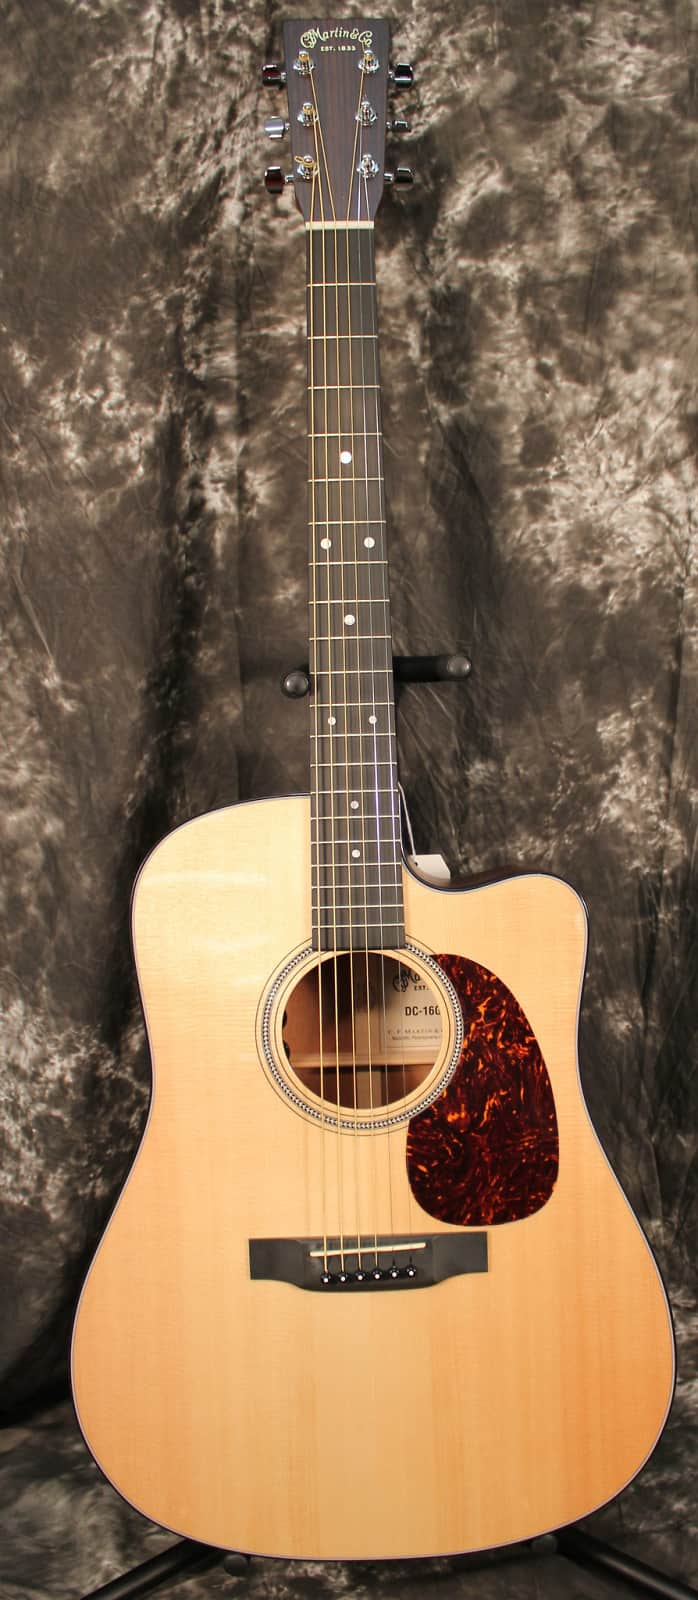 2014 martin dc16gte solid wood acoustic electric guitar with reverb. Black Bedroom Furniture Sets. Home Design Ideas